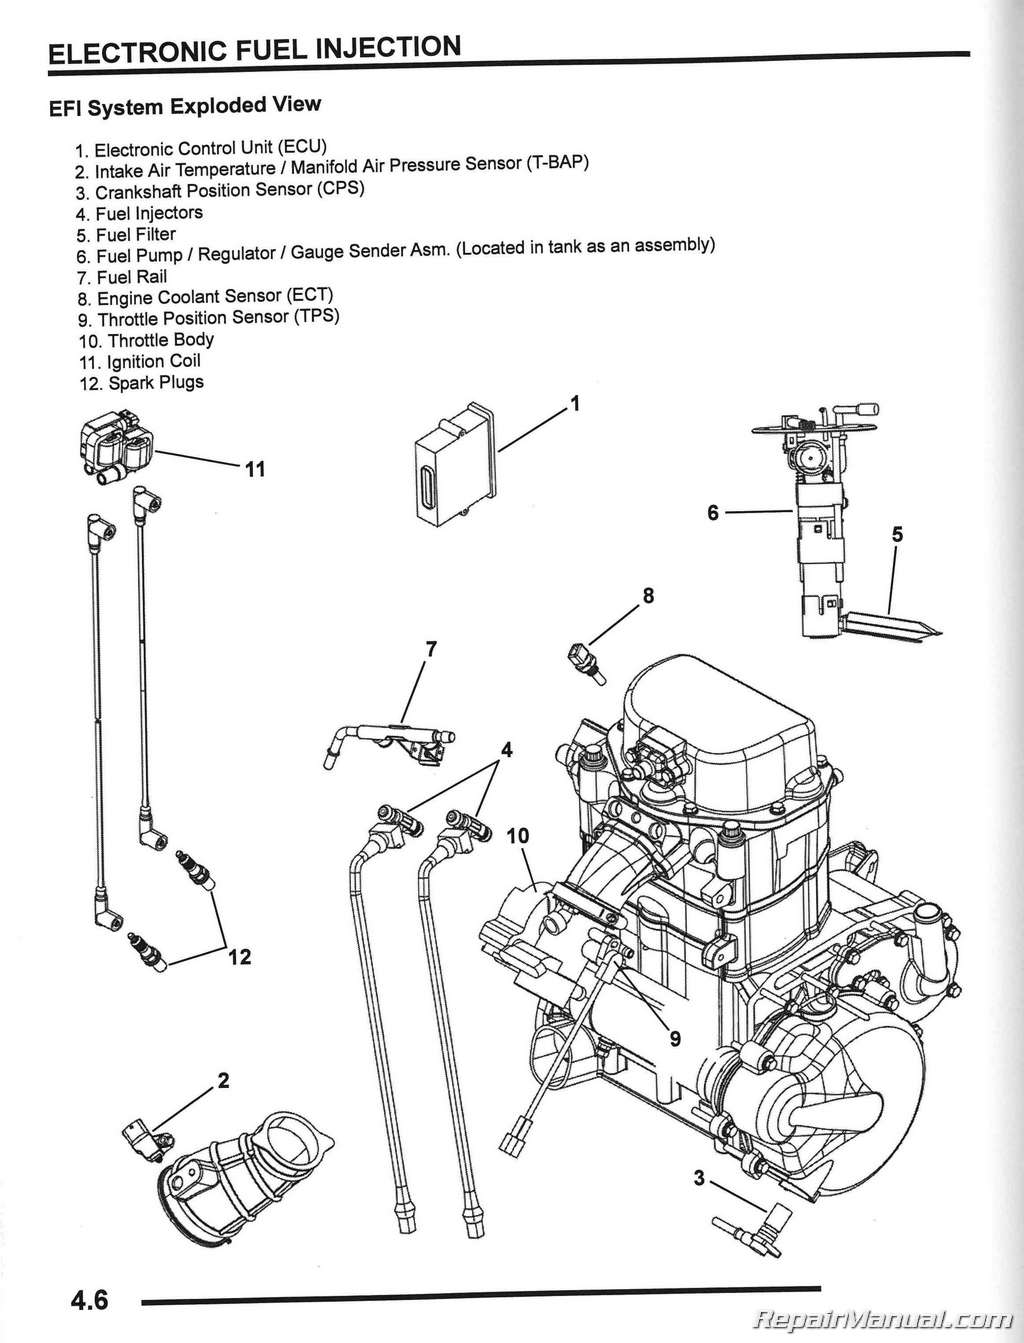 2009 Polaris Sportsman Wiring Diagram Not Lossing Rzr 2008 Ranger 800 Side By Service Manual 500 Ho